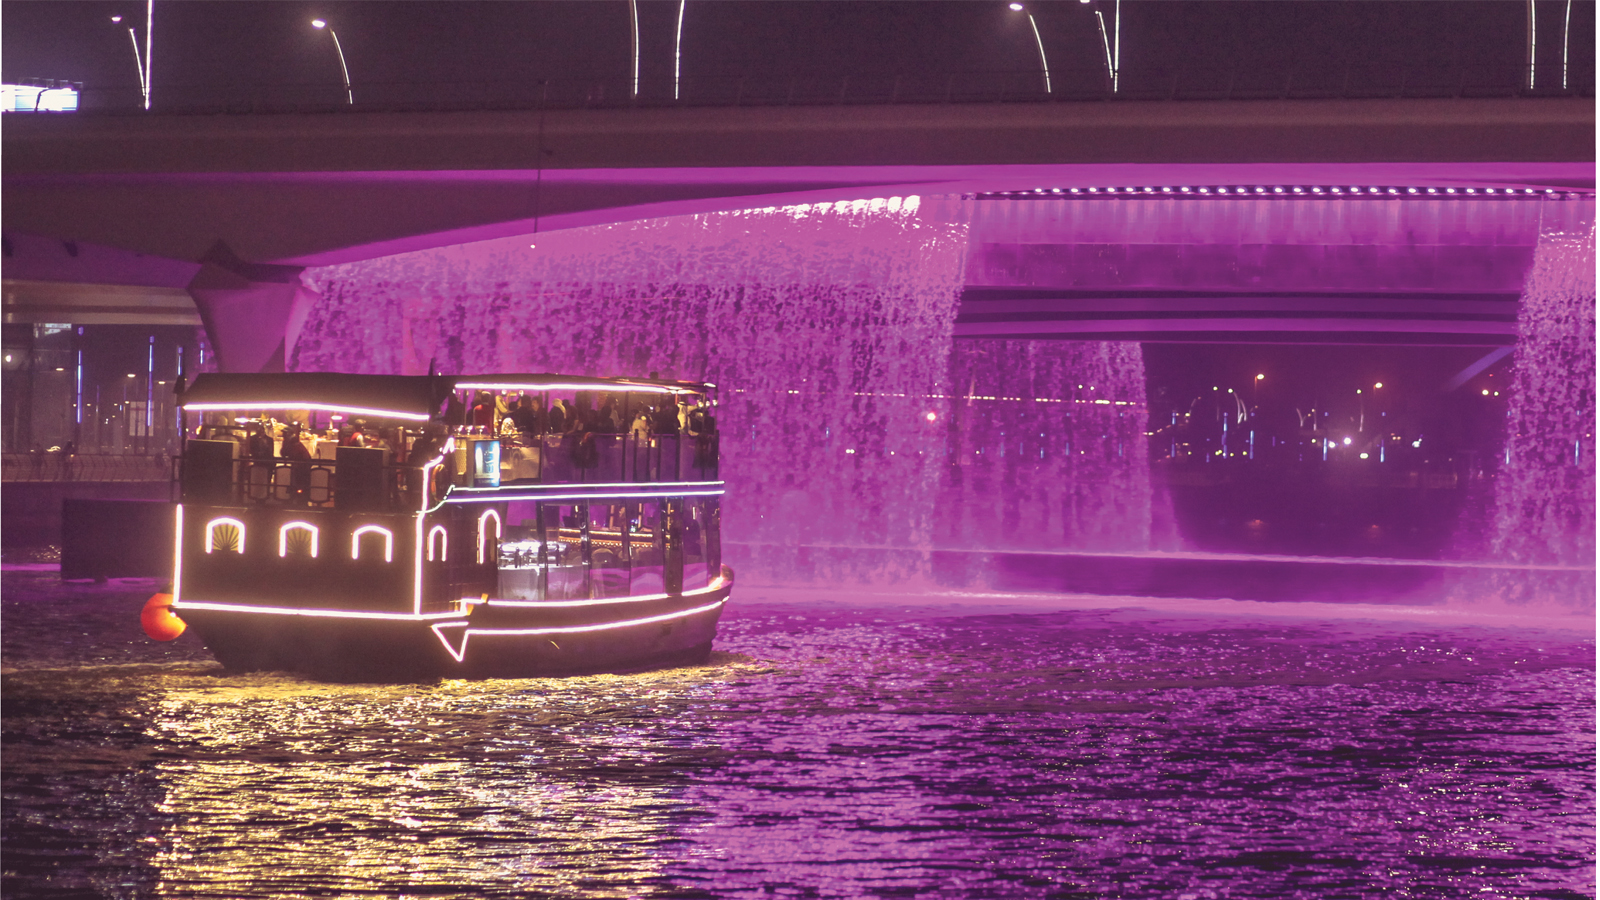 Dubai Water Canal Dinner Cruise